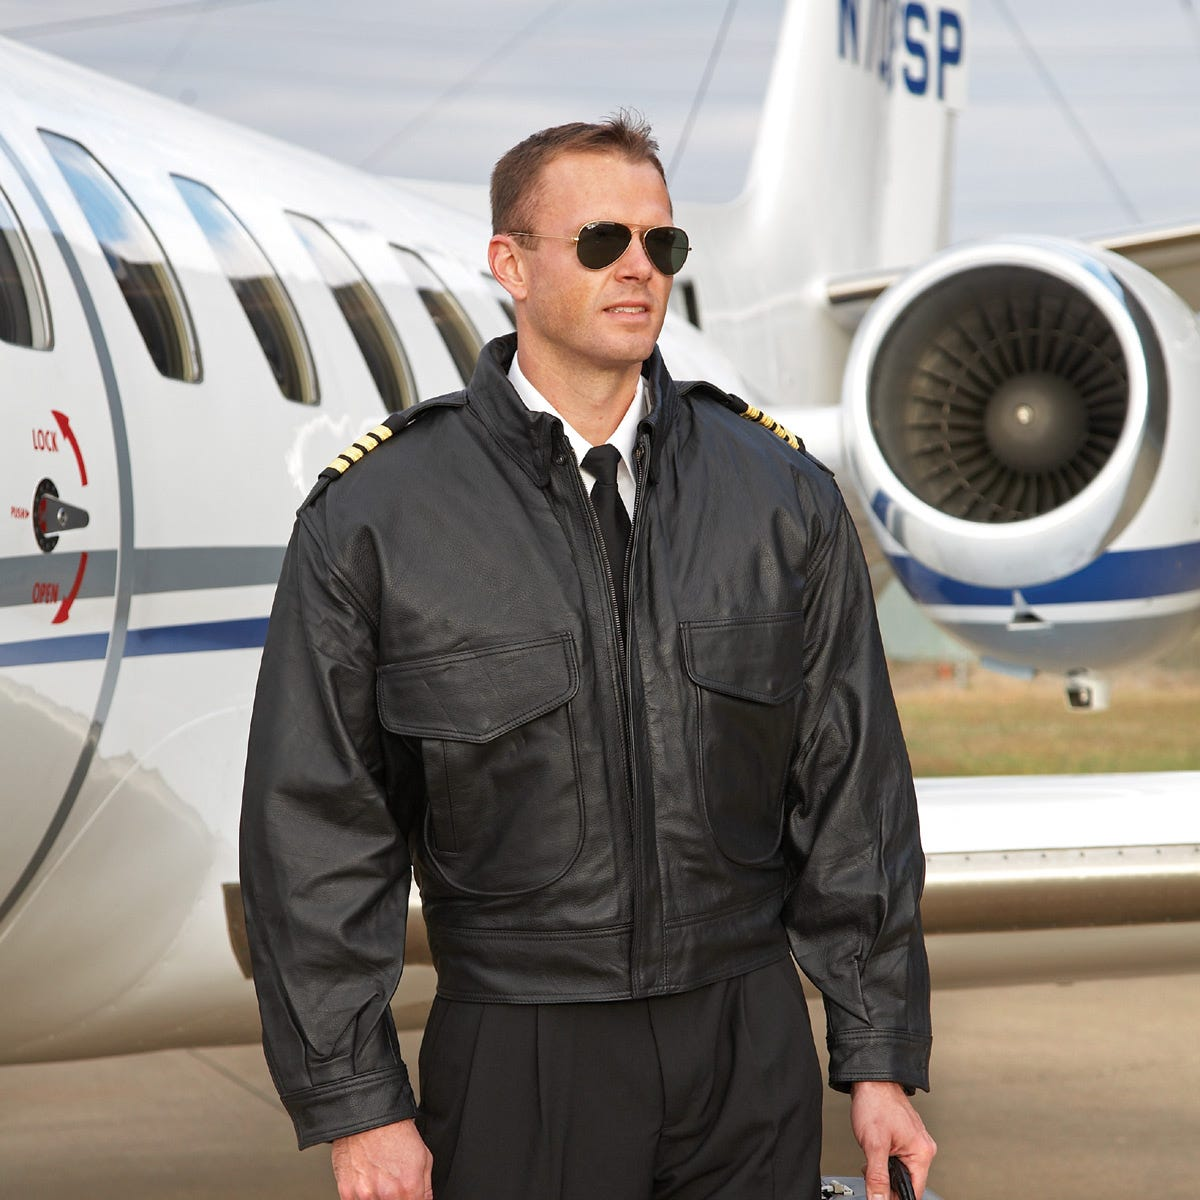 Airline Captain's Leather Flight Jacket | Apparel and Sunglasses ...